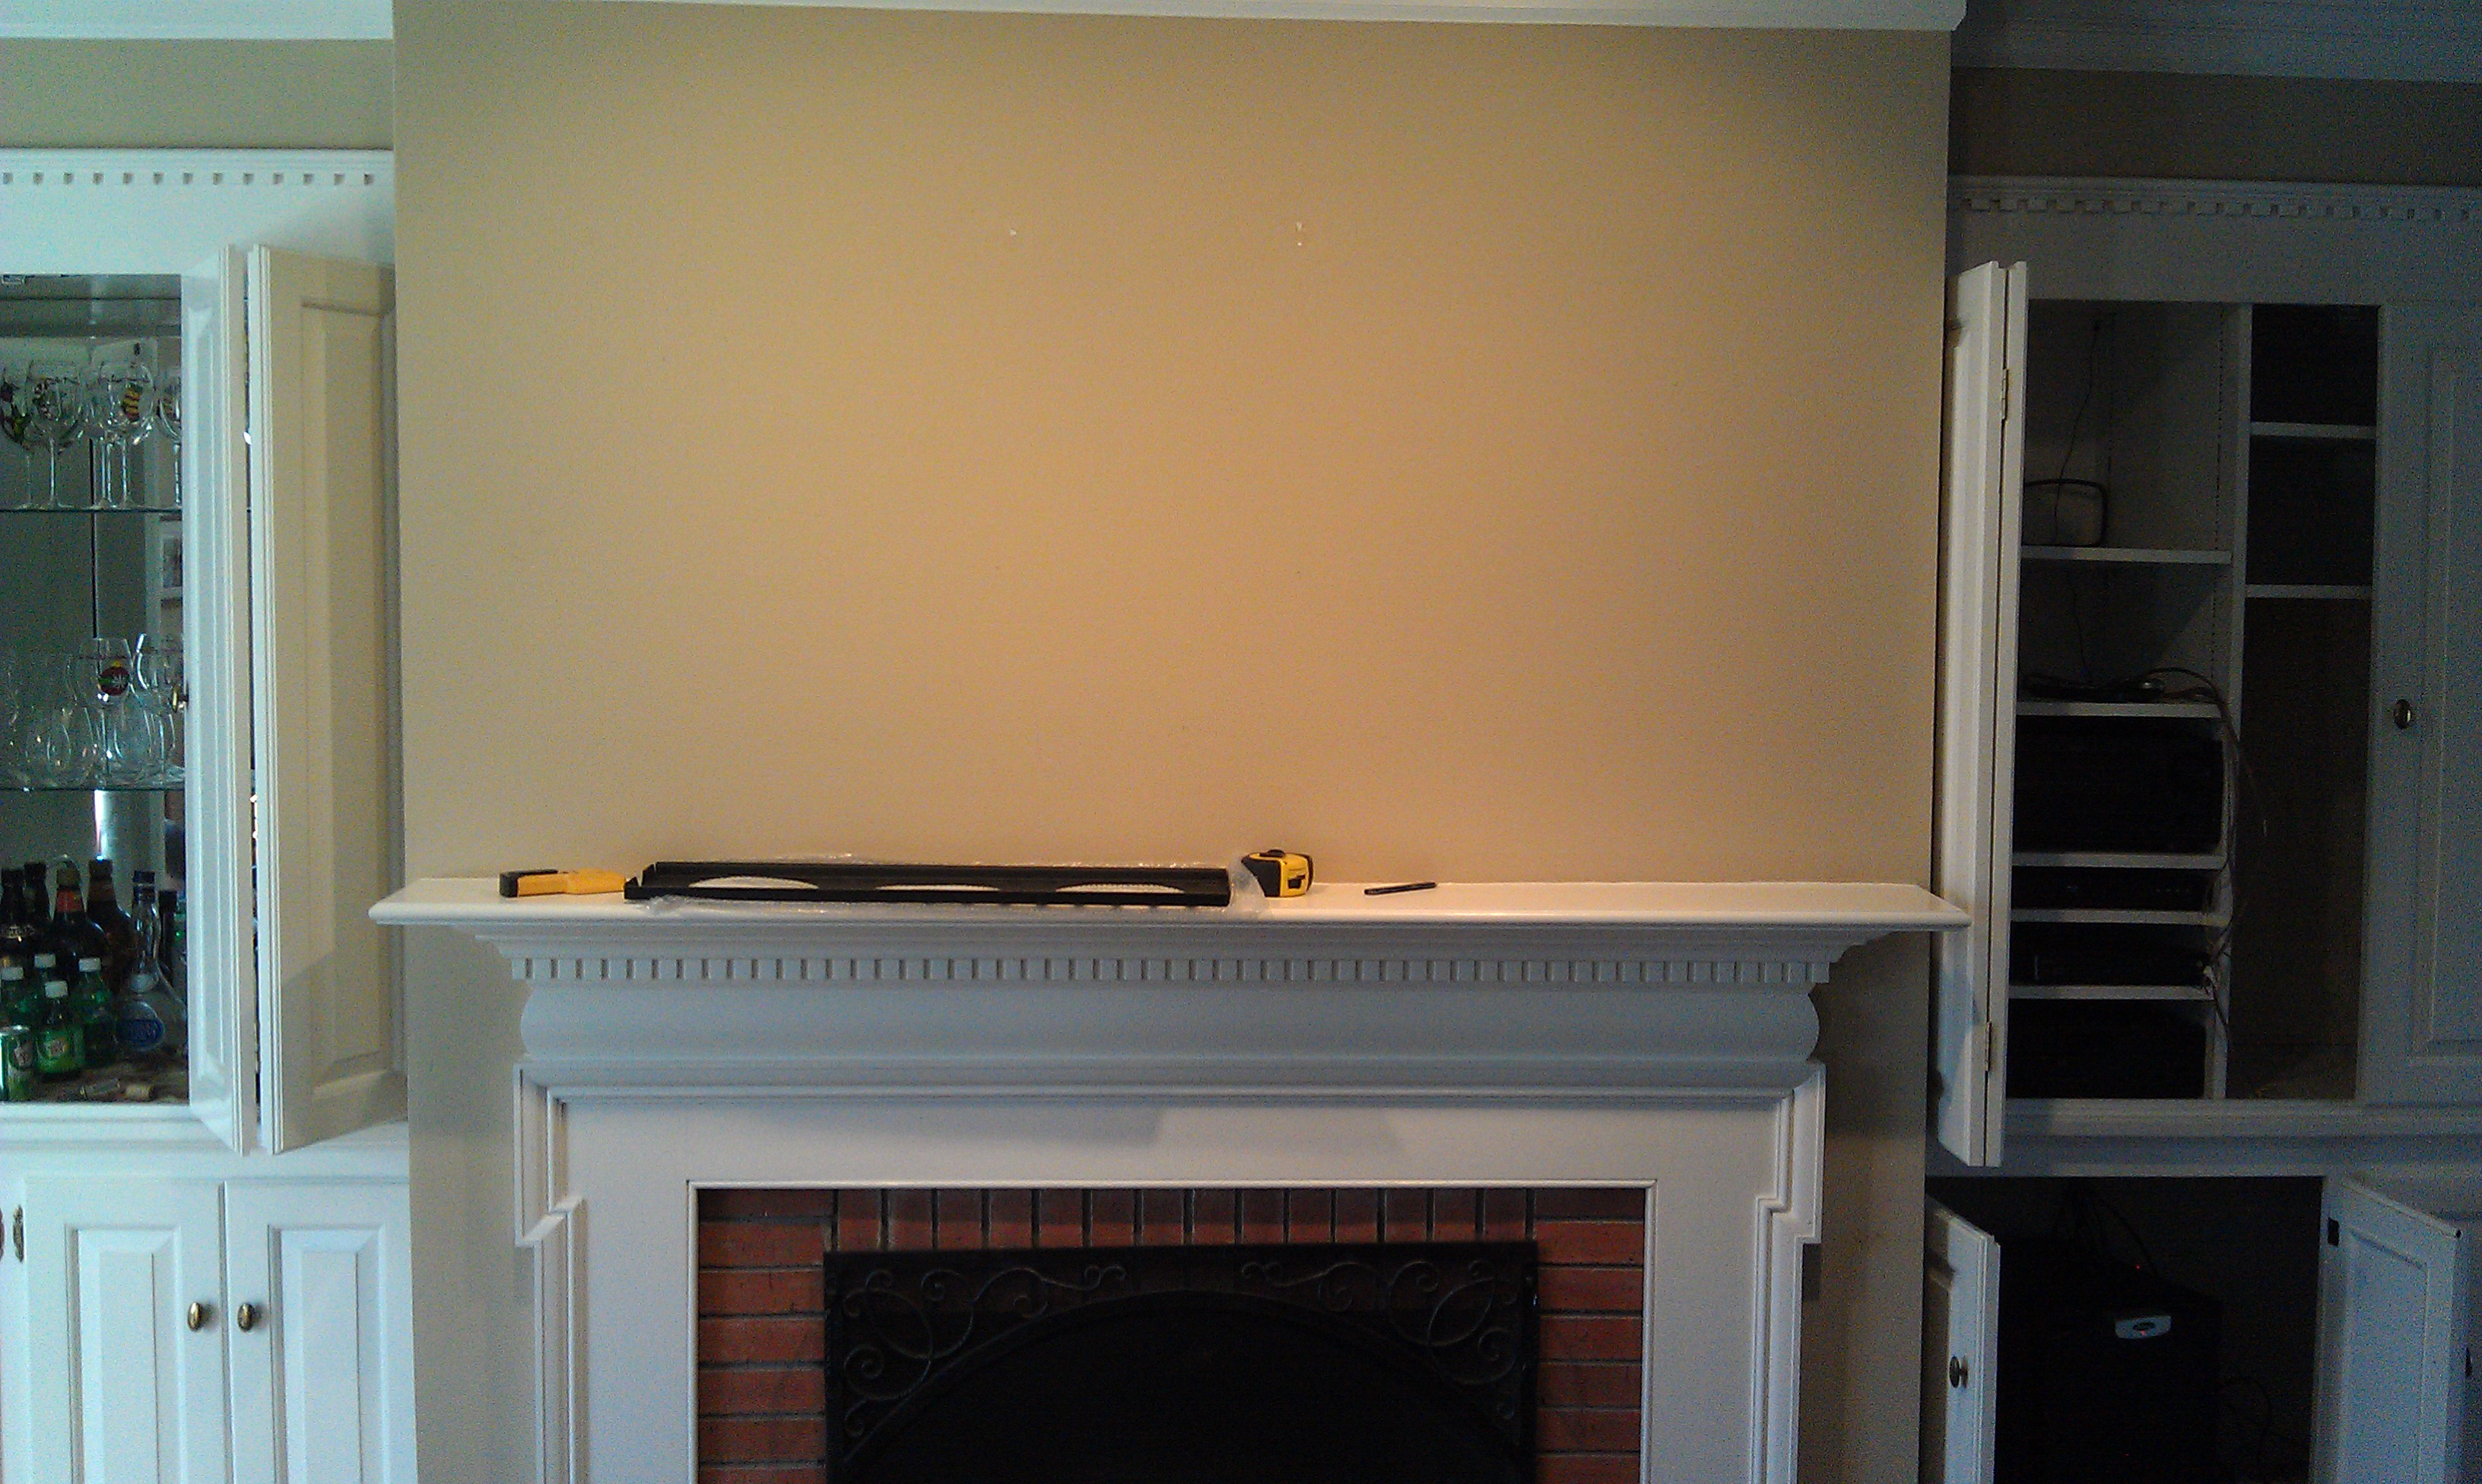 5 1 Home Theater Subwoofer Tv Over Fireplace Wires Hidden Home Theater Installation